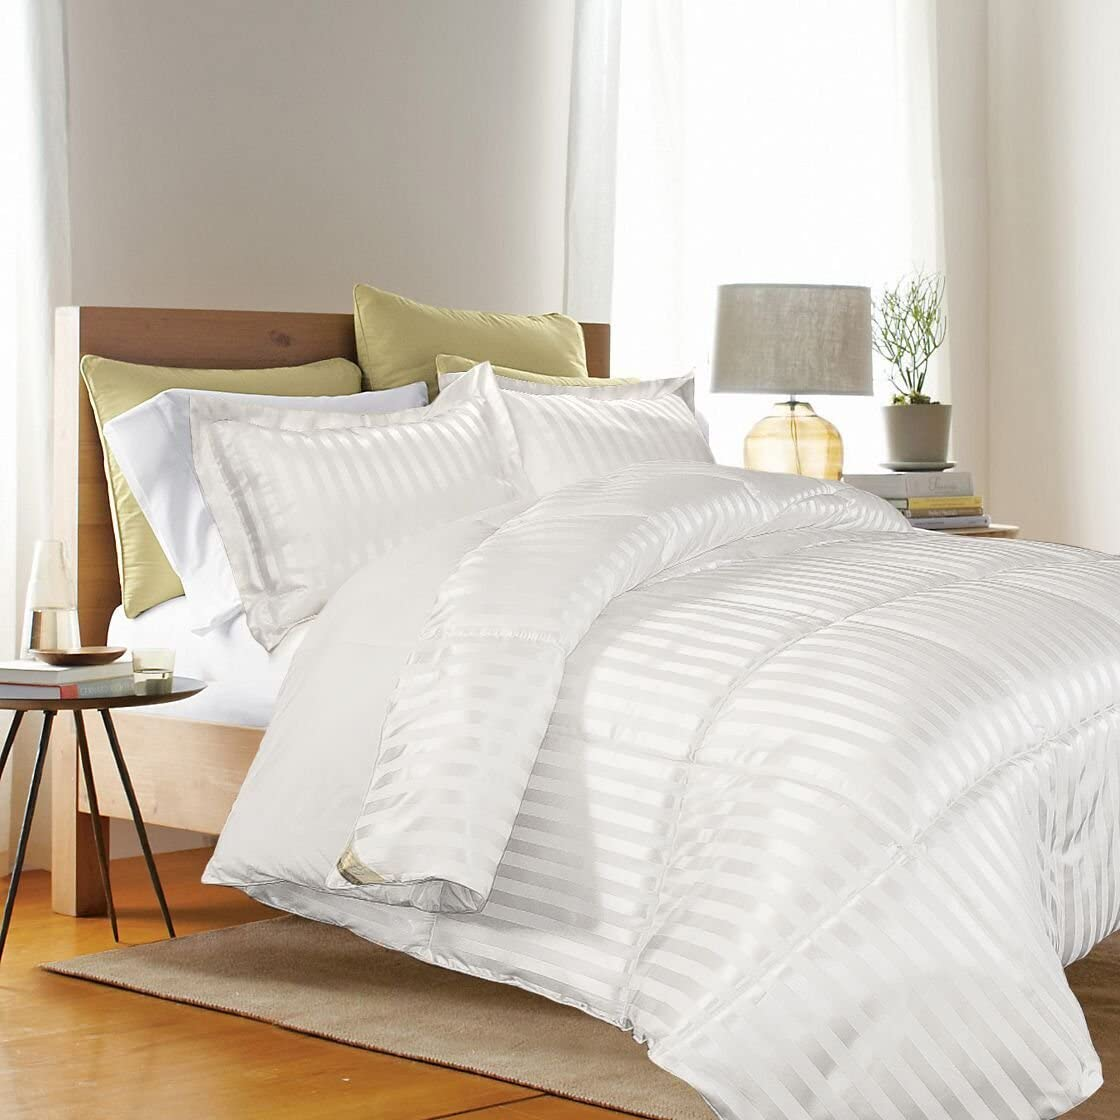 Kathy Ireland Home Essentials 3 Piece Reversible Down Alternative Comforter, King, White